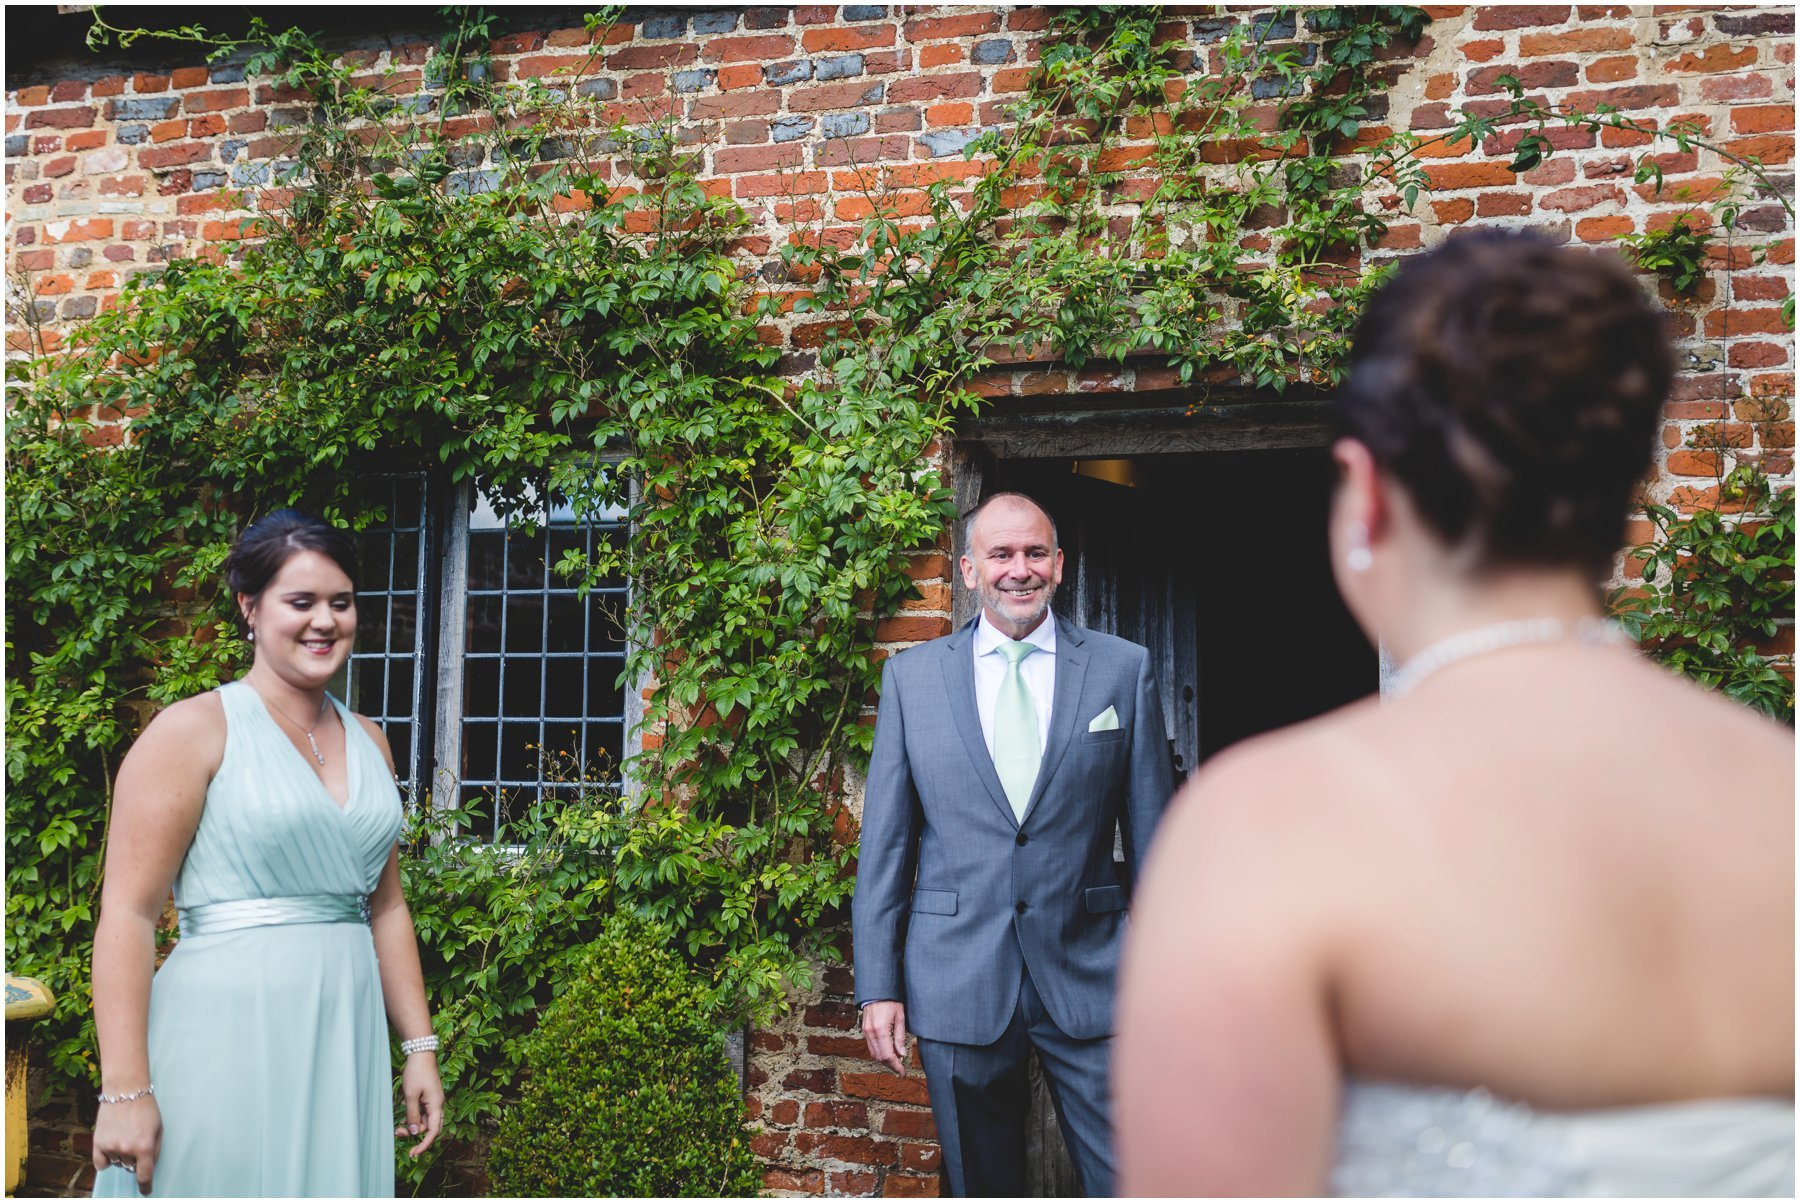 HALES HALL BARN WEDDING - NATALIE AND TOBY - NORWICH WEDDING PHOTOGRAPHER